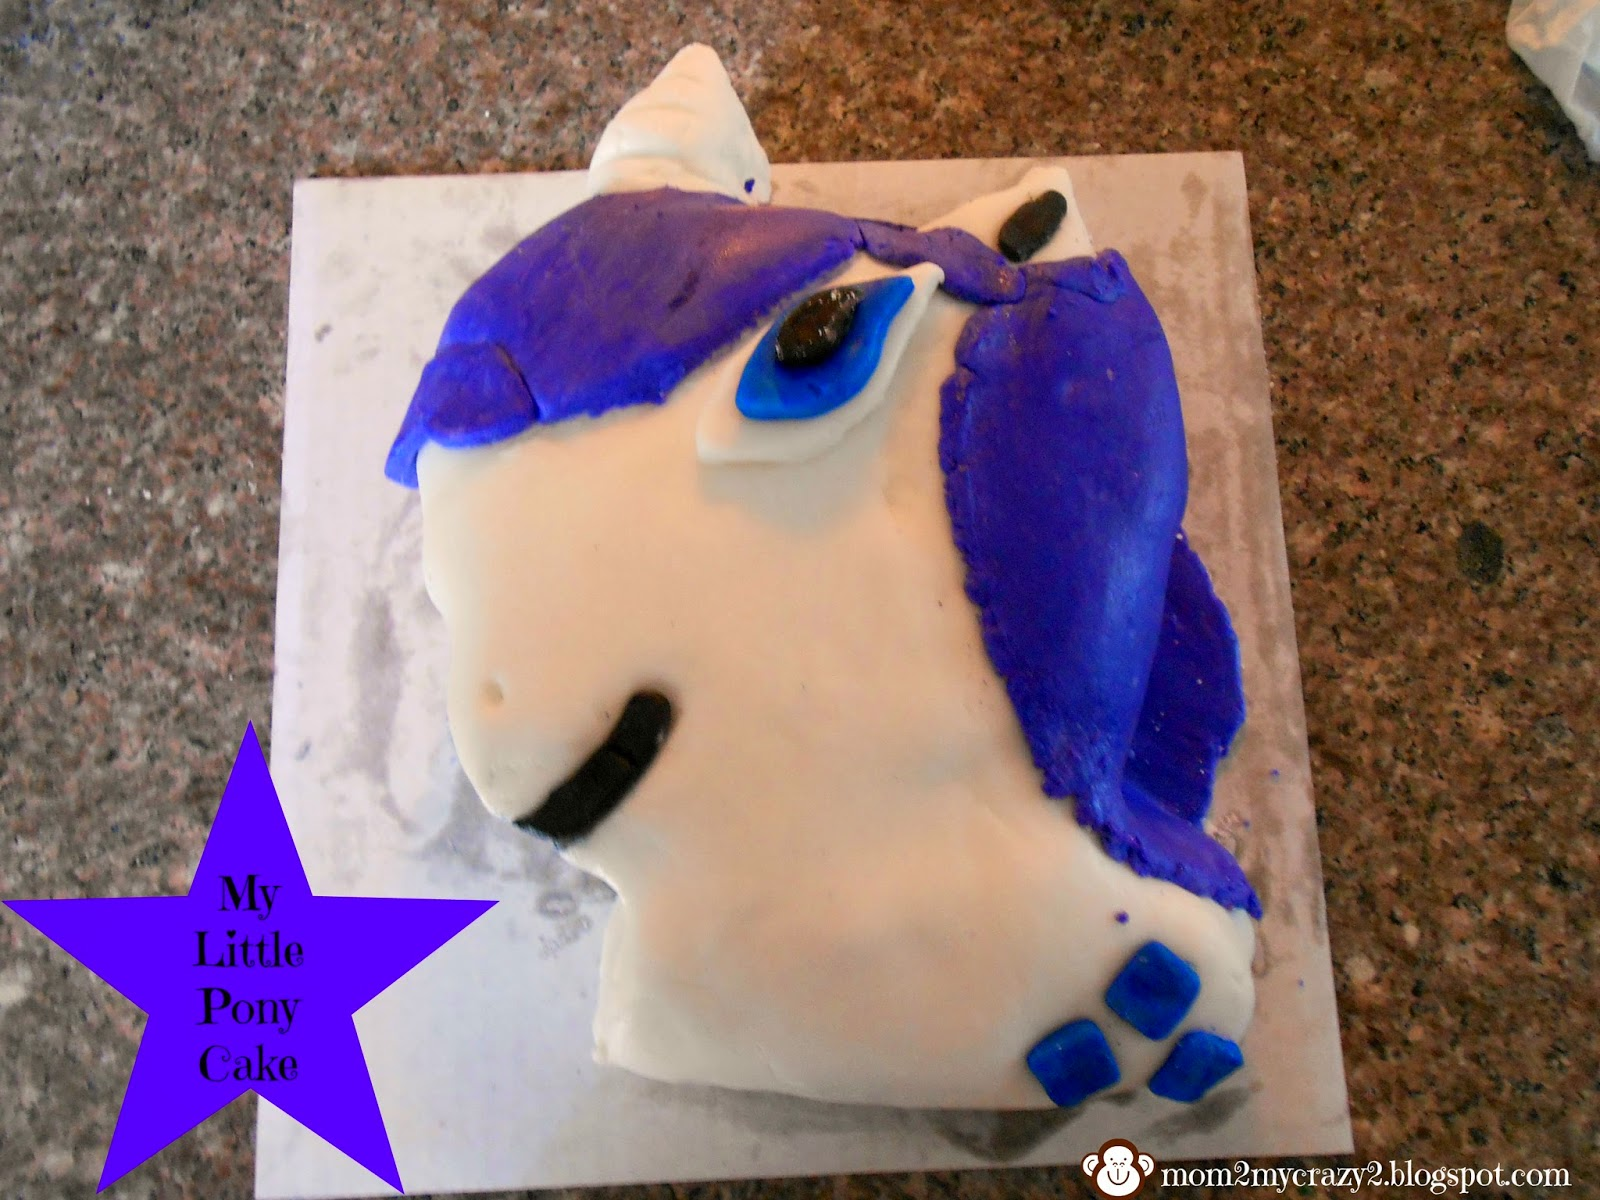 My Little Pony Cake Rarity